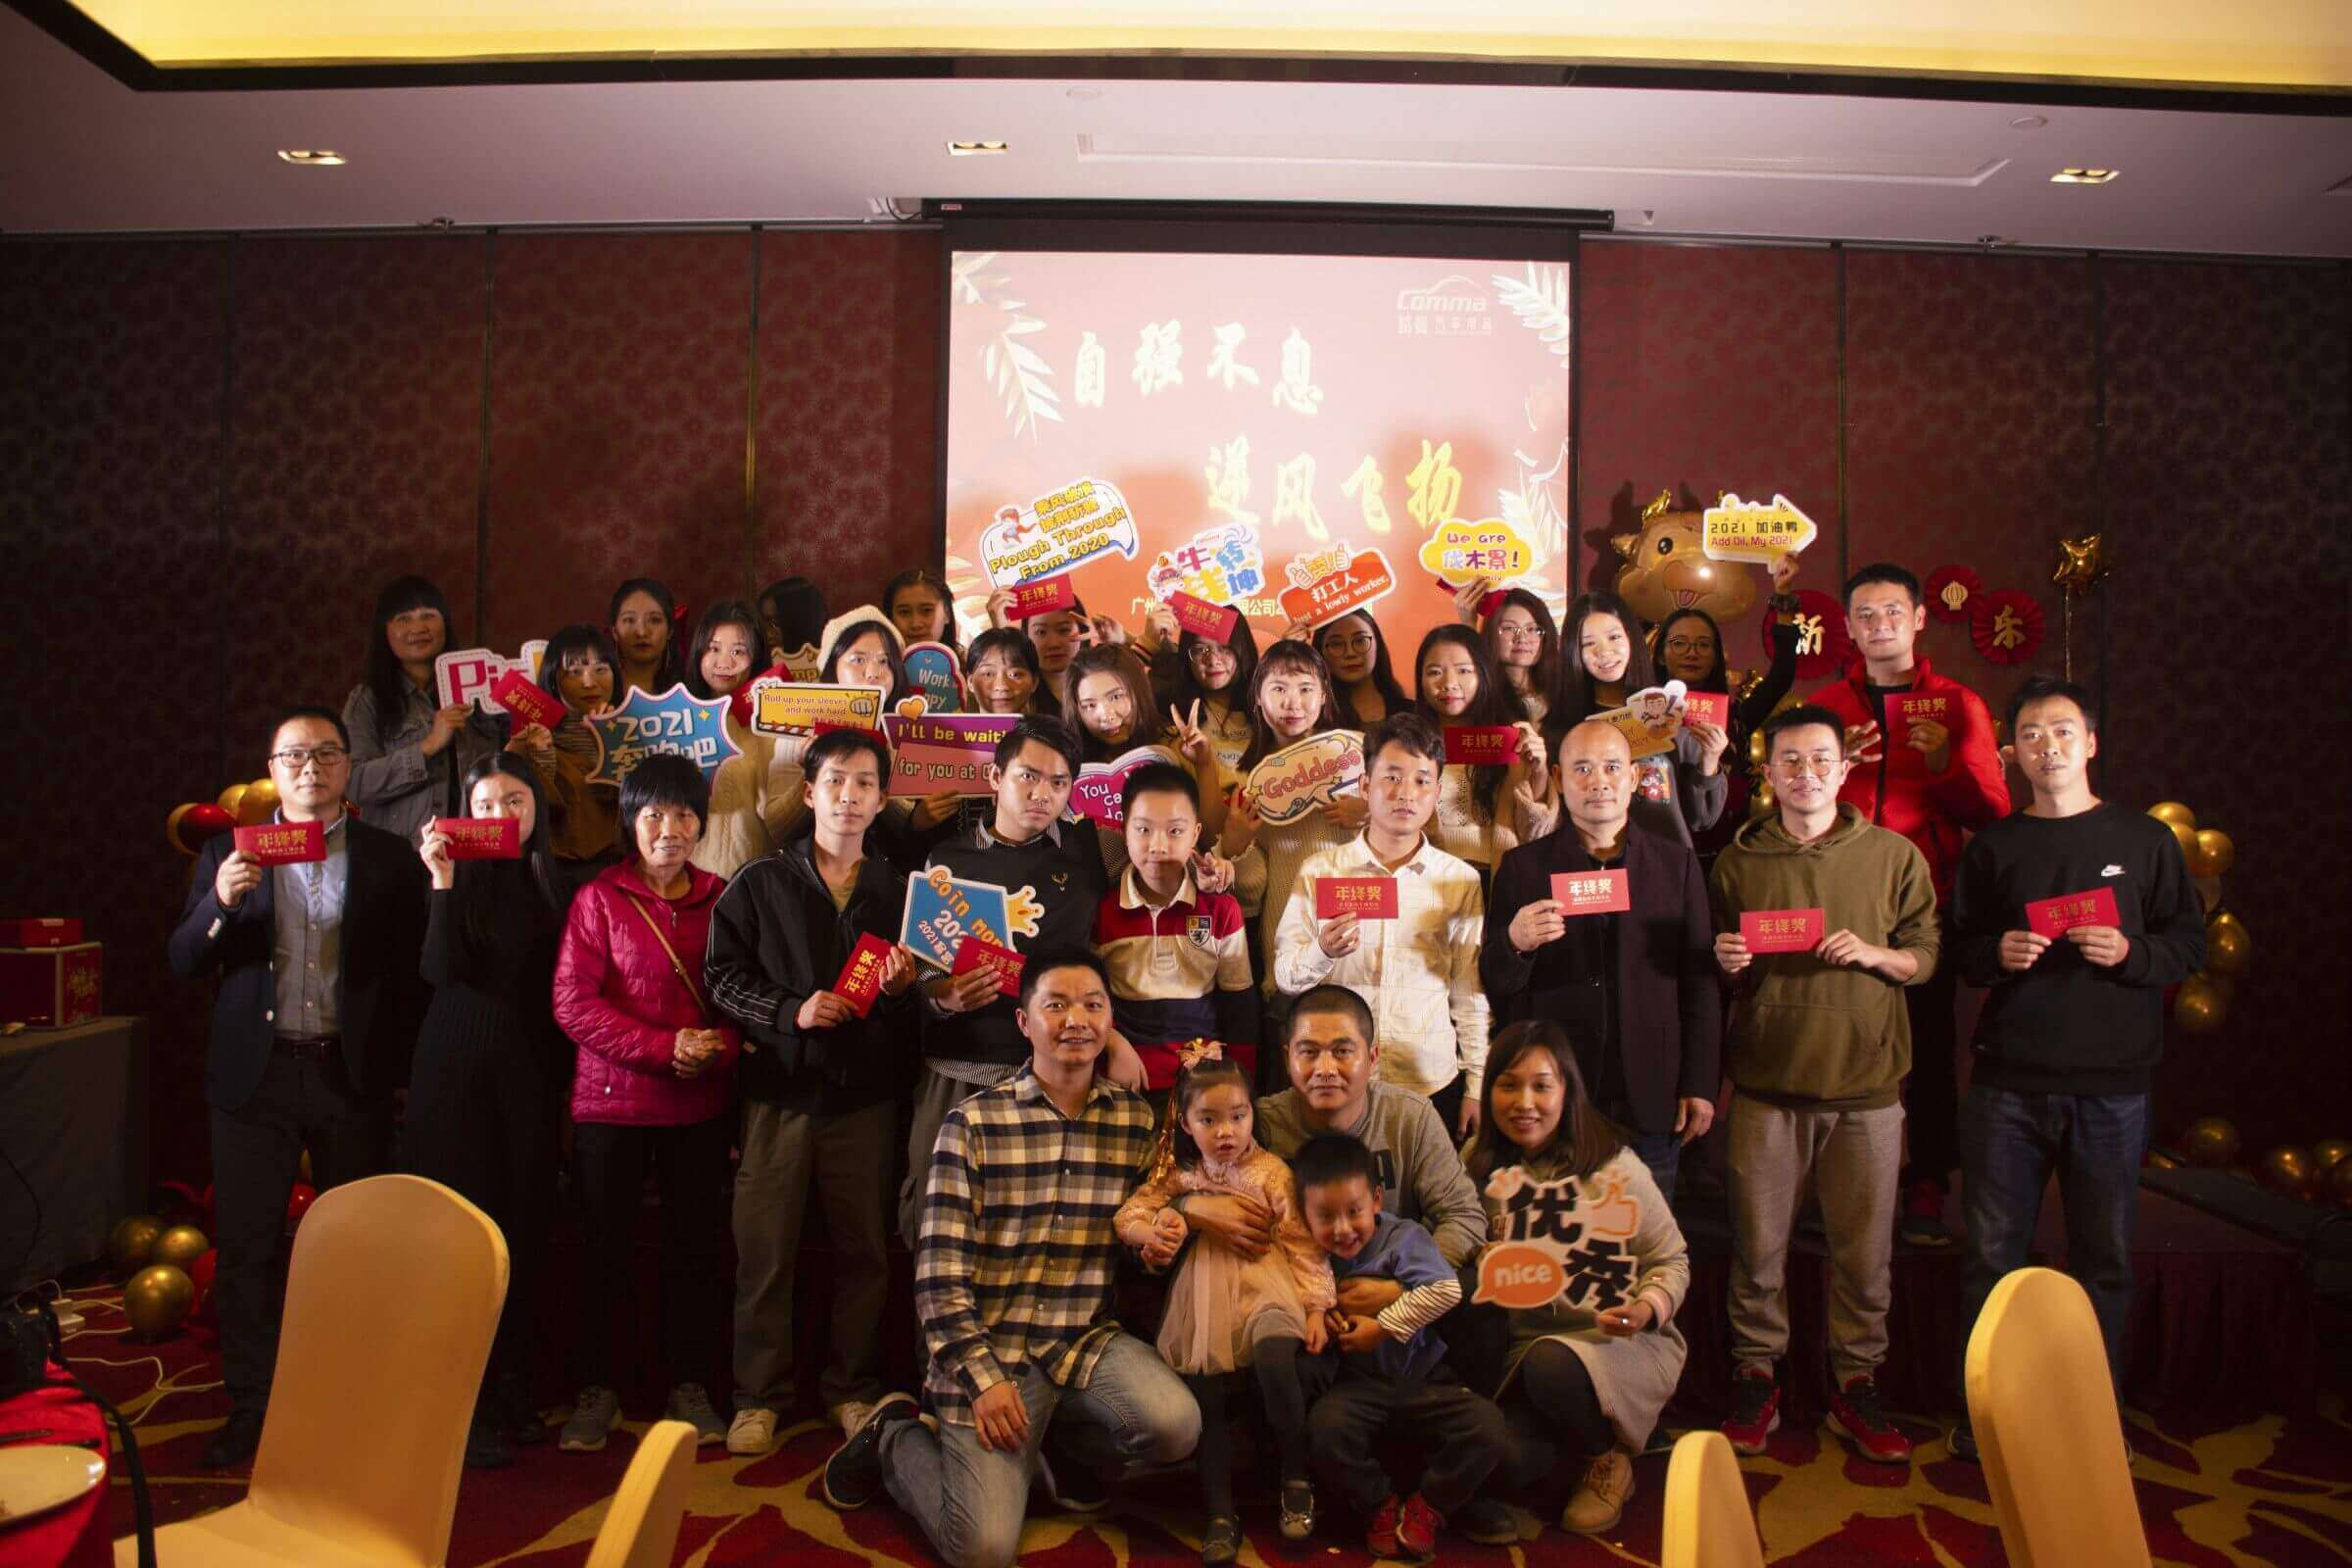 Comma's Year-End Party on Jan. 23rd, 2021